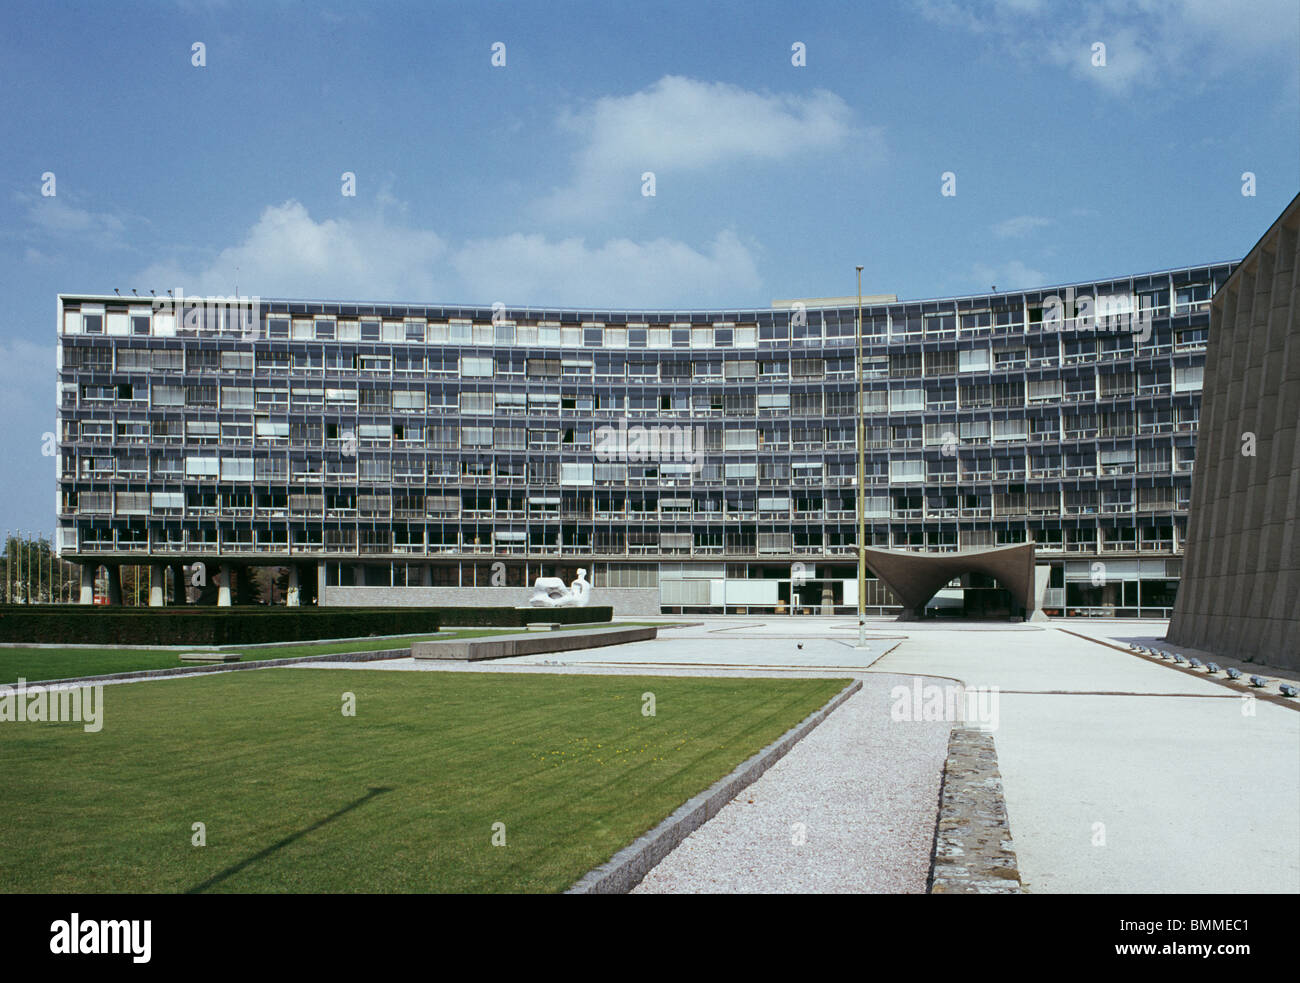 Unesco House, Paris, France. Completed 1958. Buildings designed by Breuer, Nervi and Zehrfuss. - Stock Image